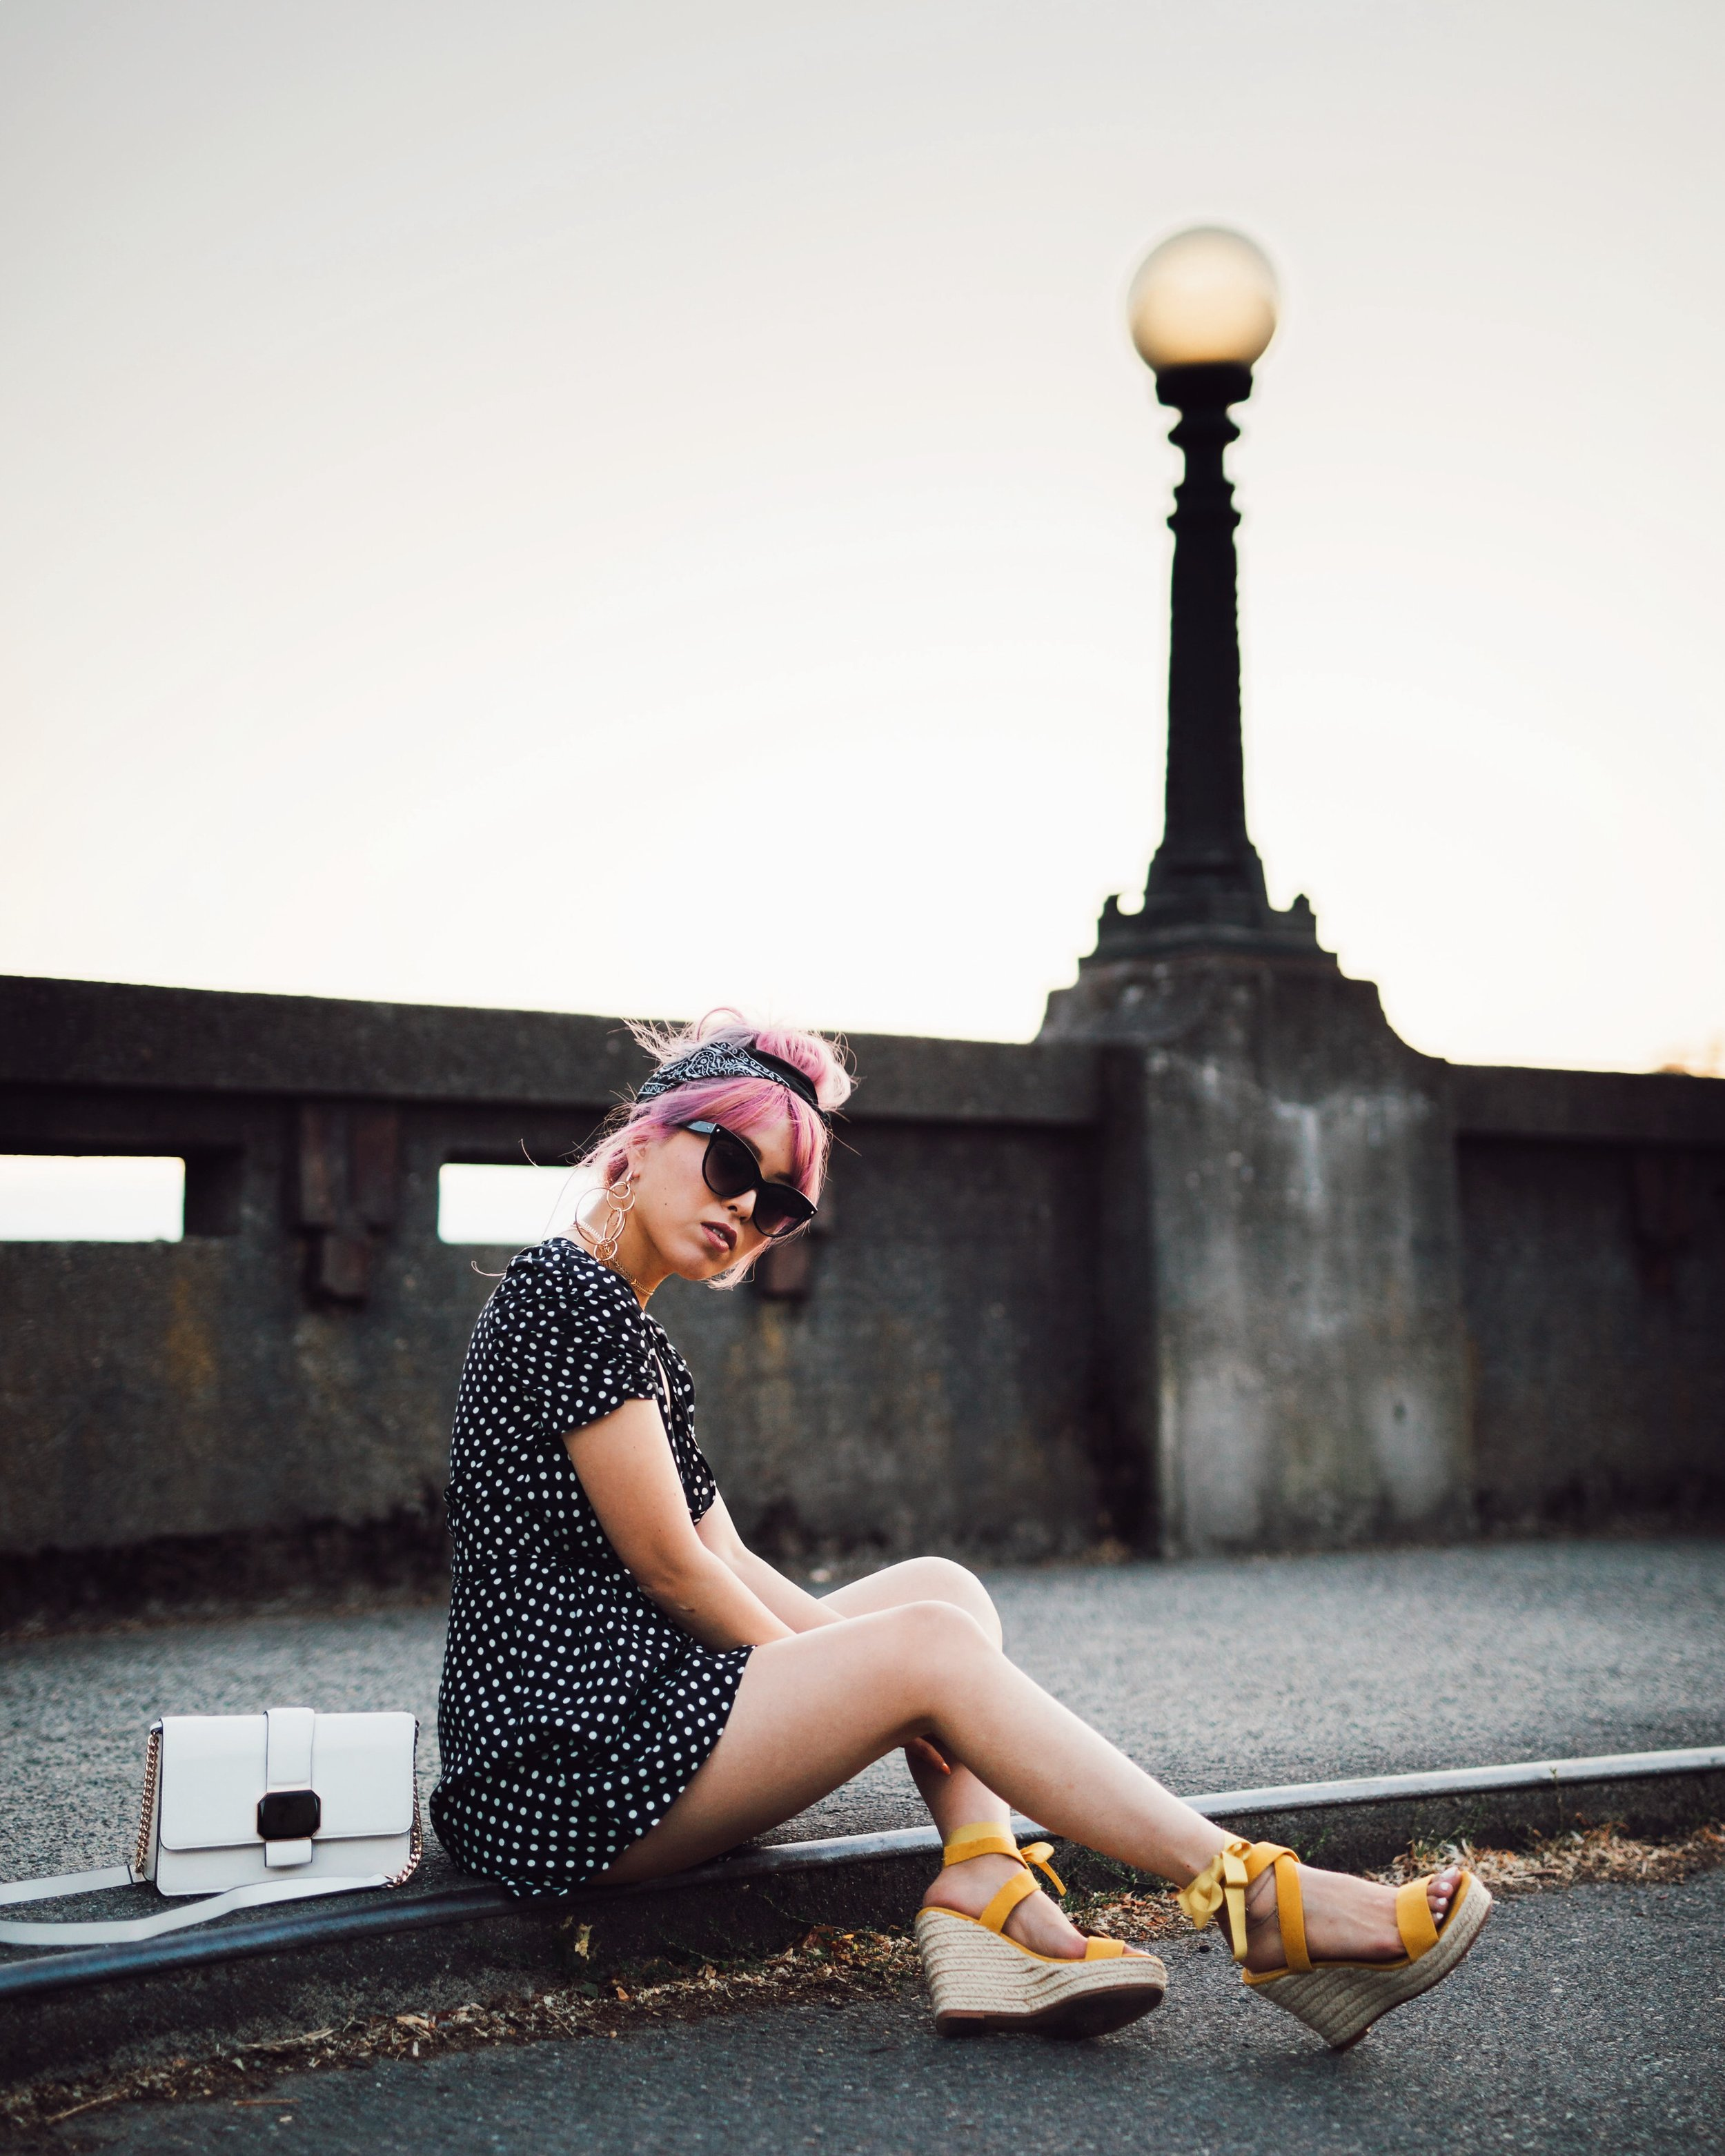 ASOS Polkadot Romper_Urban Outfitter Bandana_Zara Statement Earrings_H&M White Crossbody Bag_ShoeDazzle Yellow Lace up Wedge Sandals_Aikas Love Closet_Seattle Fashion Style Blogger_Japanese_Pink Hair_Street Snap_Summer Style_Messy bun updo 3